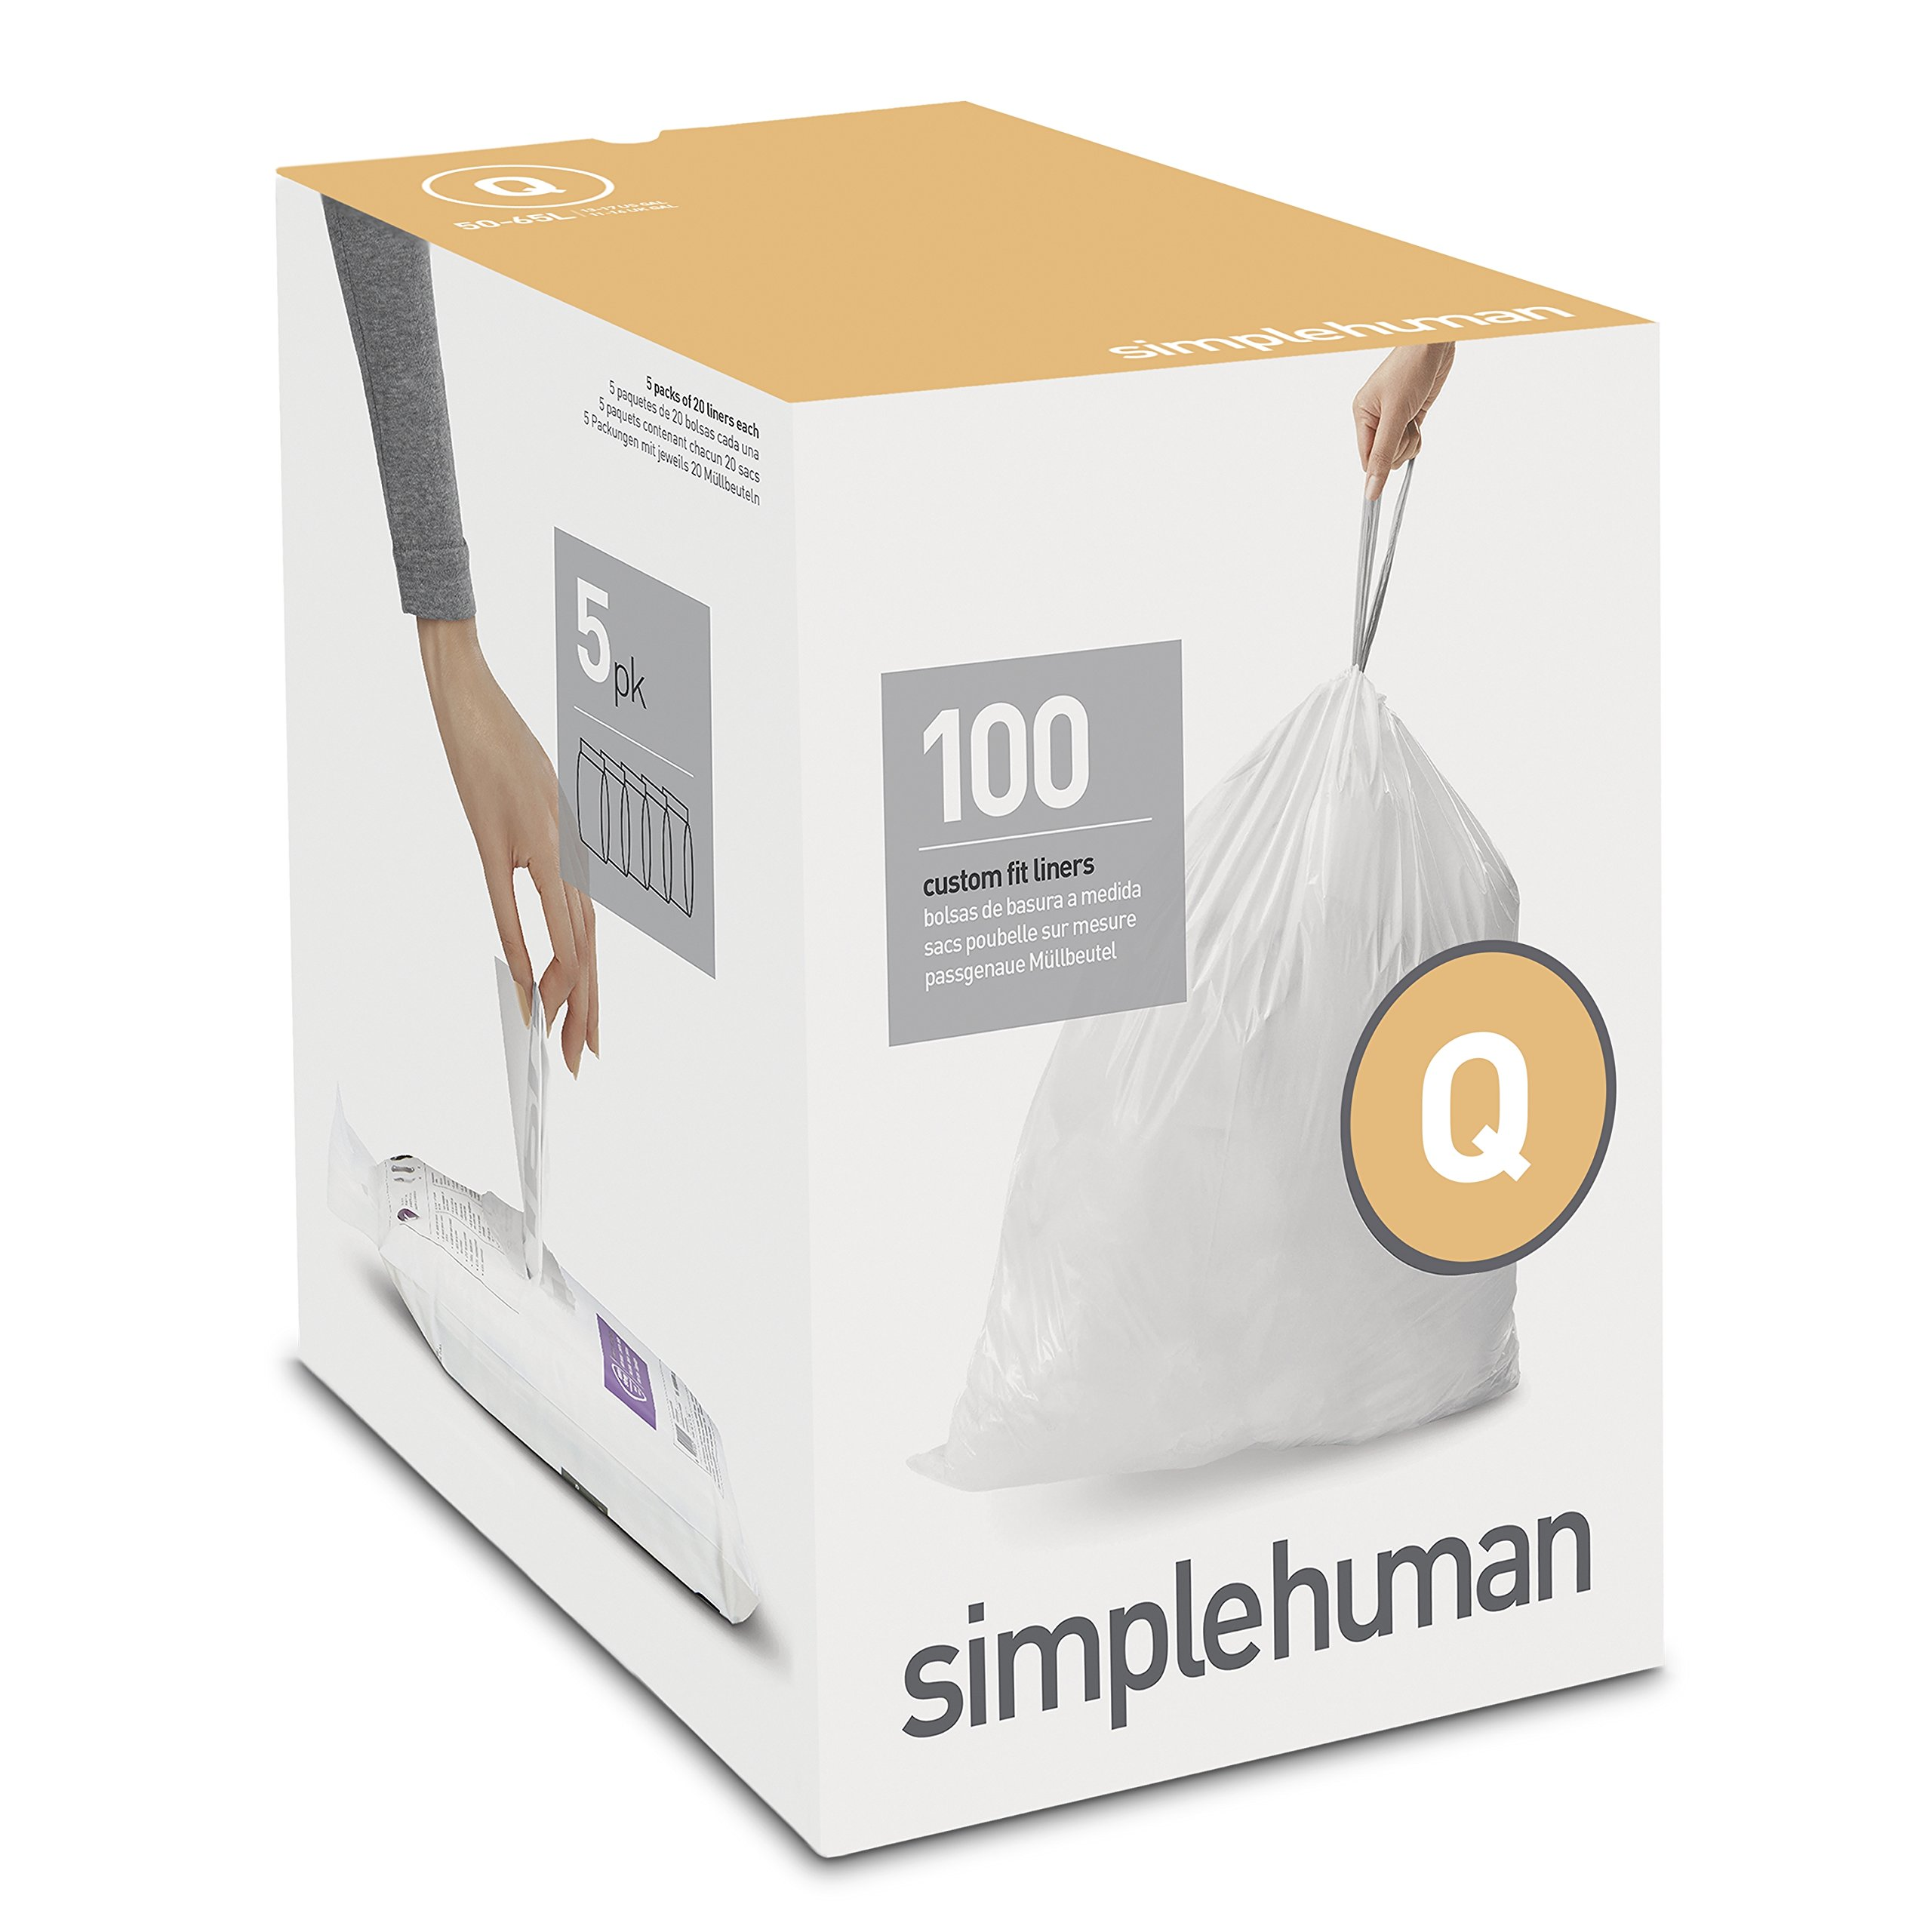 simplehuman Code Q Custom Fit Drawstring Trash Bags, 50 - 65 Liter / 13-17 Gallon, 100-Count Box by simplehuman